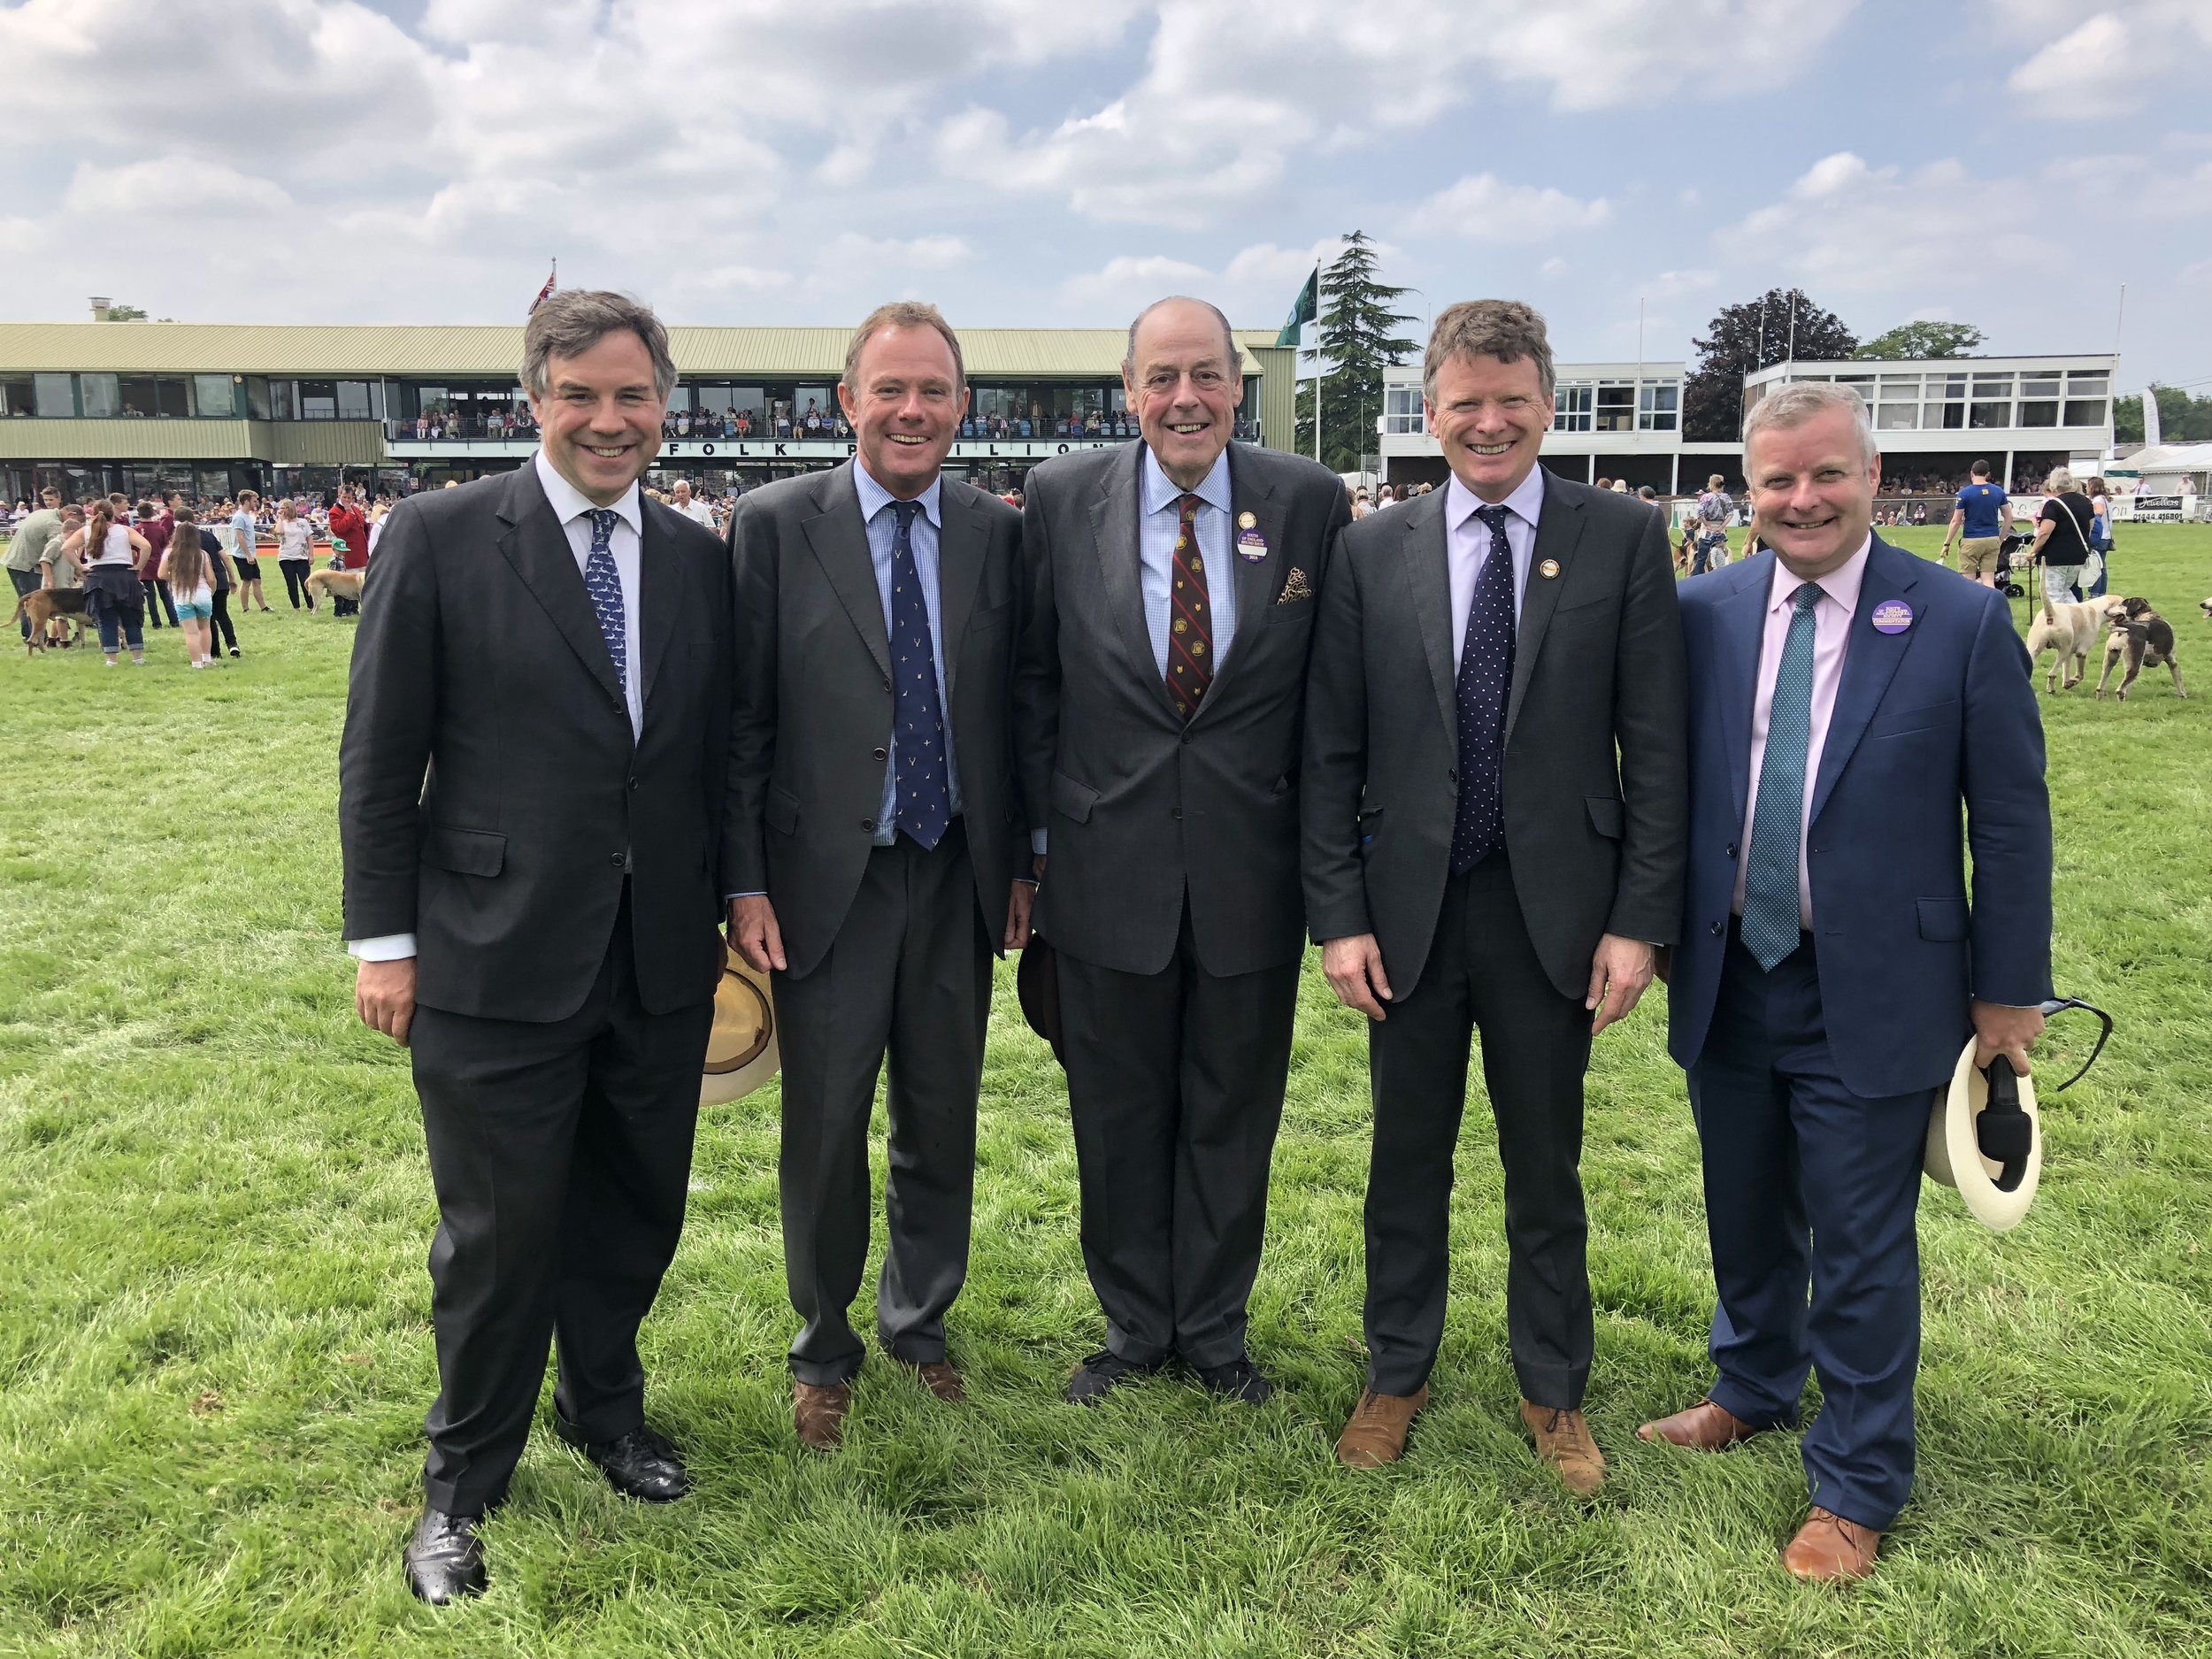 (Left to right) Jeremy Quin MP (Horsham), Nick Herbert MP (Arundel & South Downs), Sir Nicholas Soames (Mid Sussex), Richard Benyon MP (Newbury) and Chris Davies MP (Brecon & Radnorshire) at the South of England Show at Ardingly on Friday.